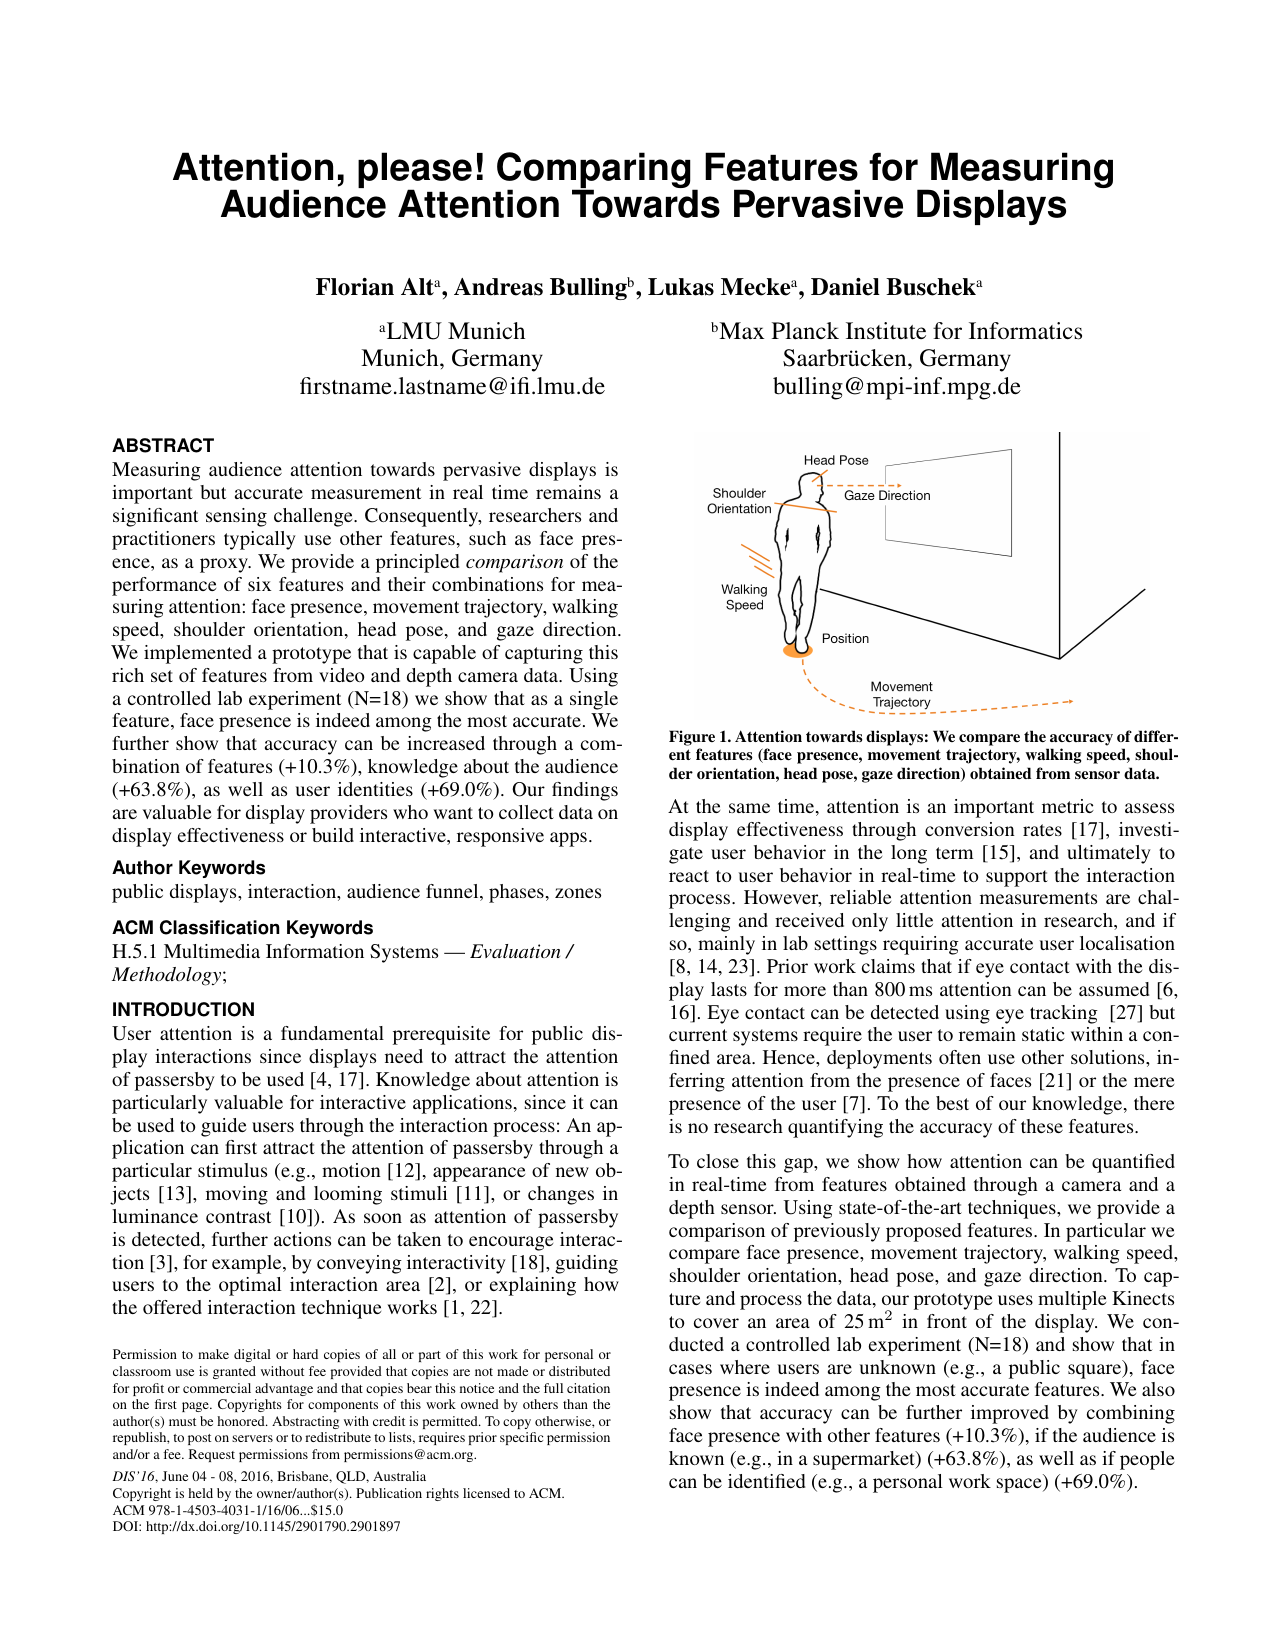 Attention, please! Comparing Features for Measuring Audience Attention Towards Pervasive Displays